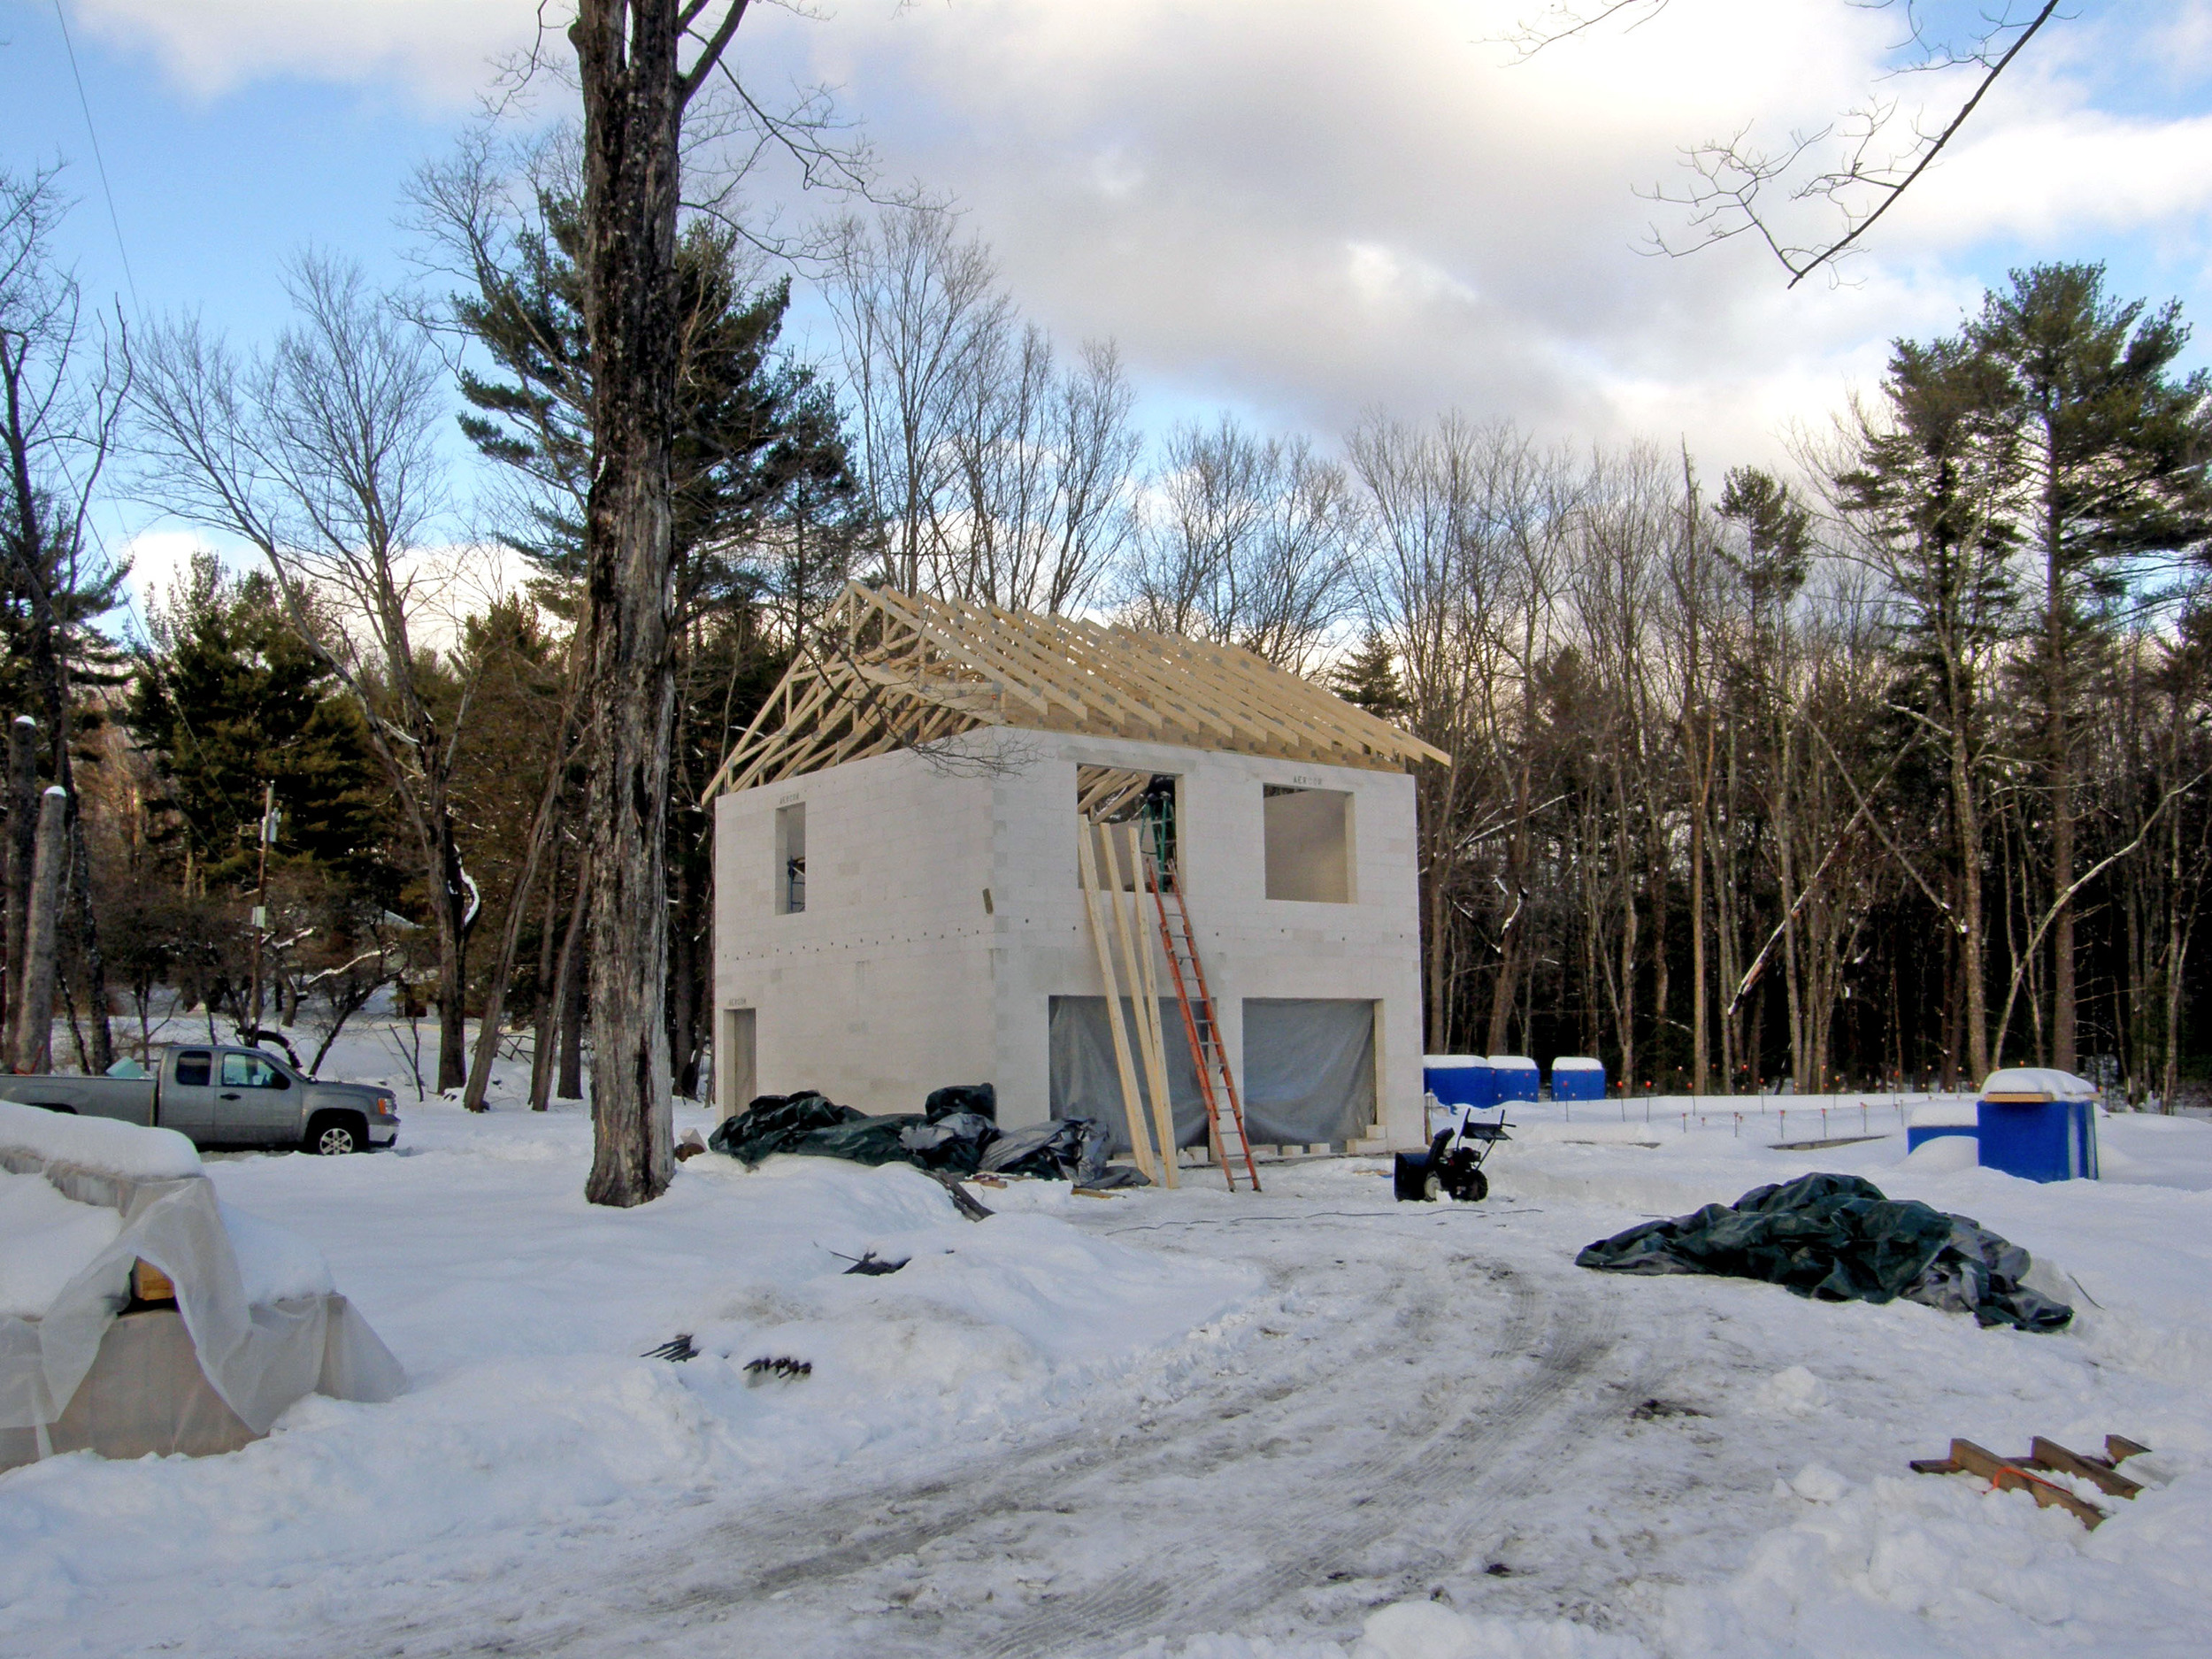 2015-2-10 garage with roomf structure.JPG